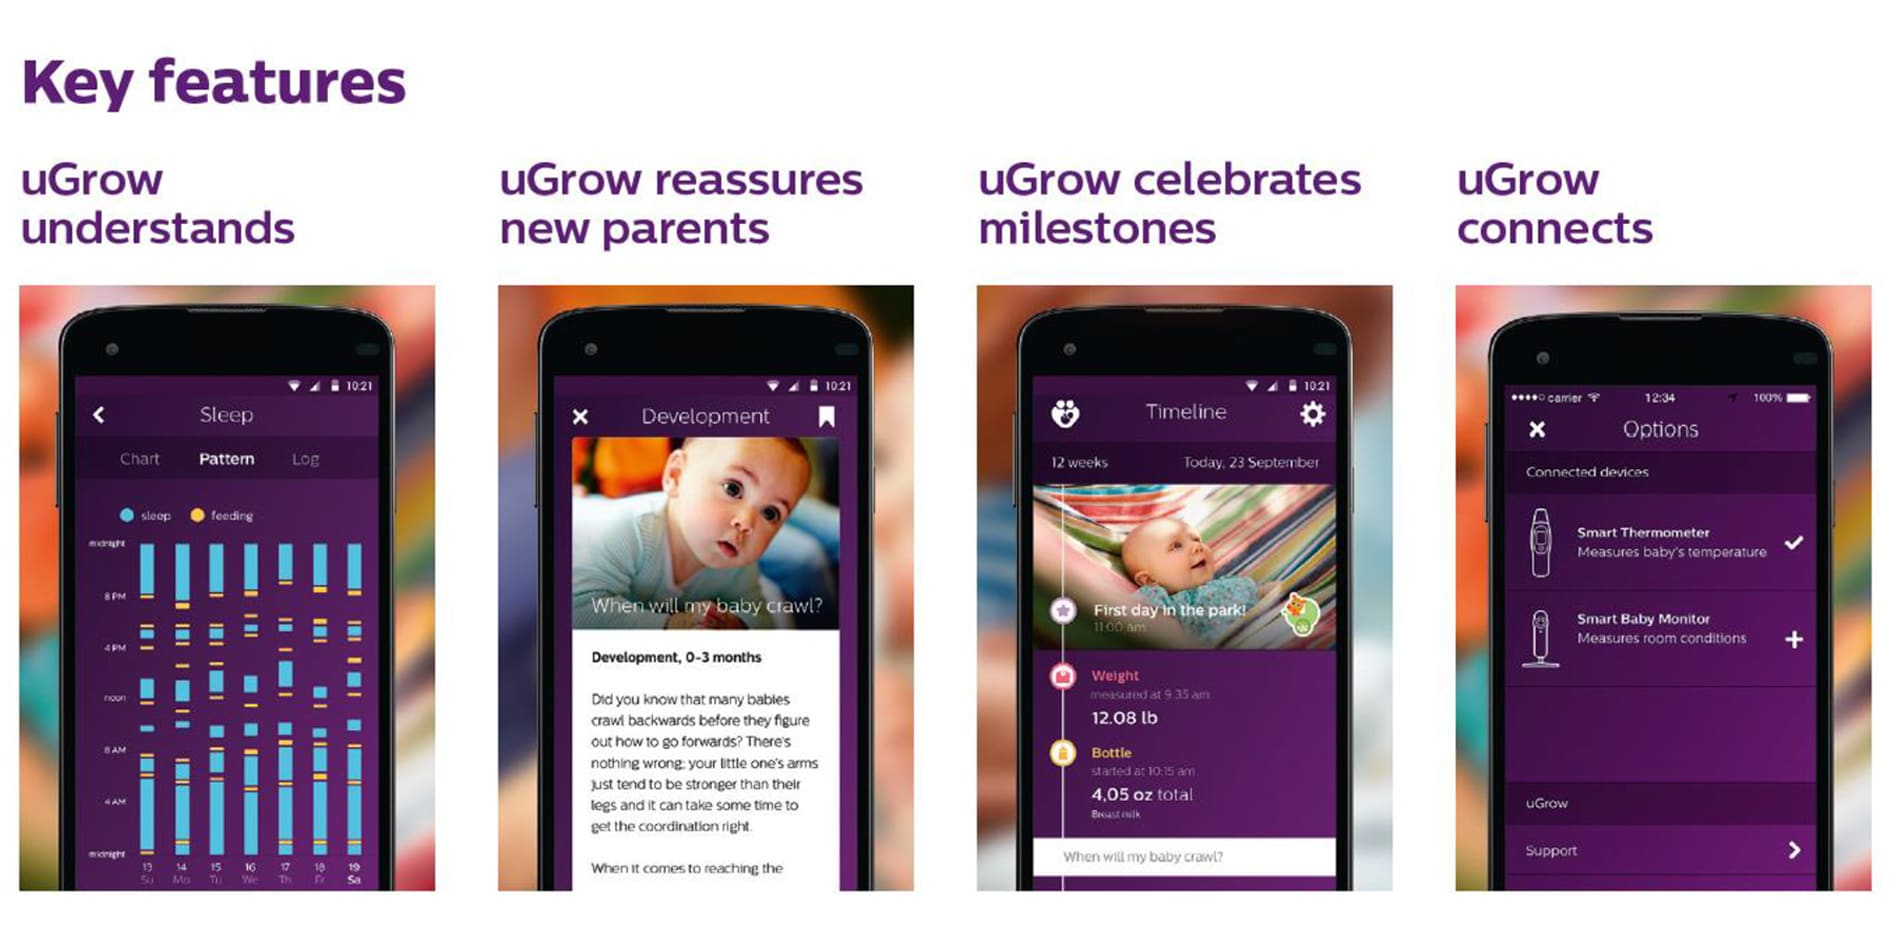 ugow app features